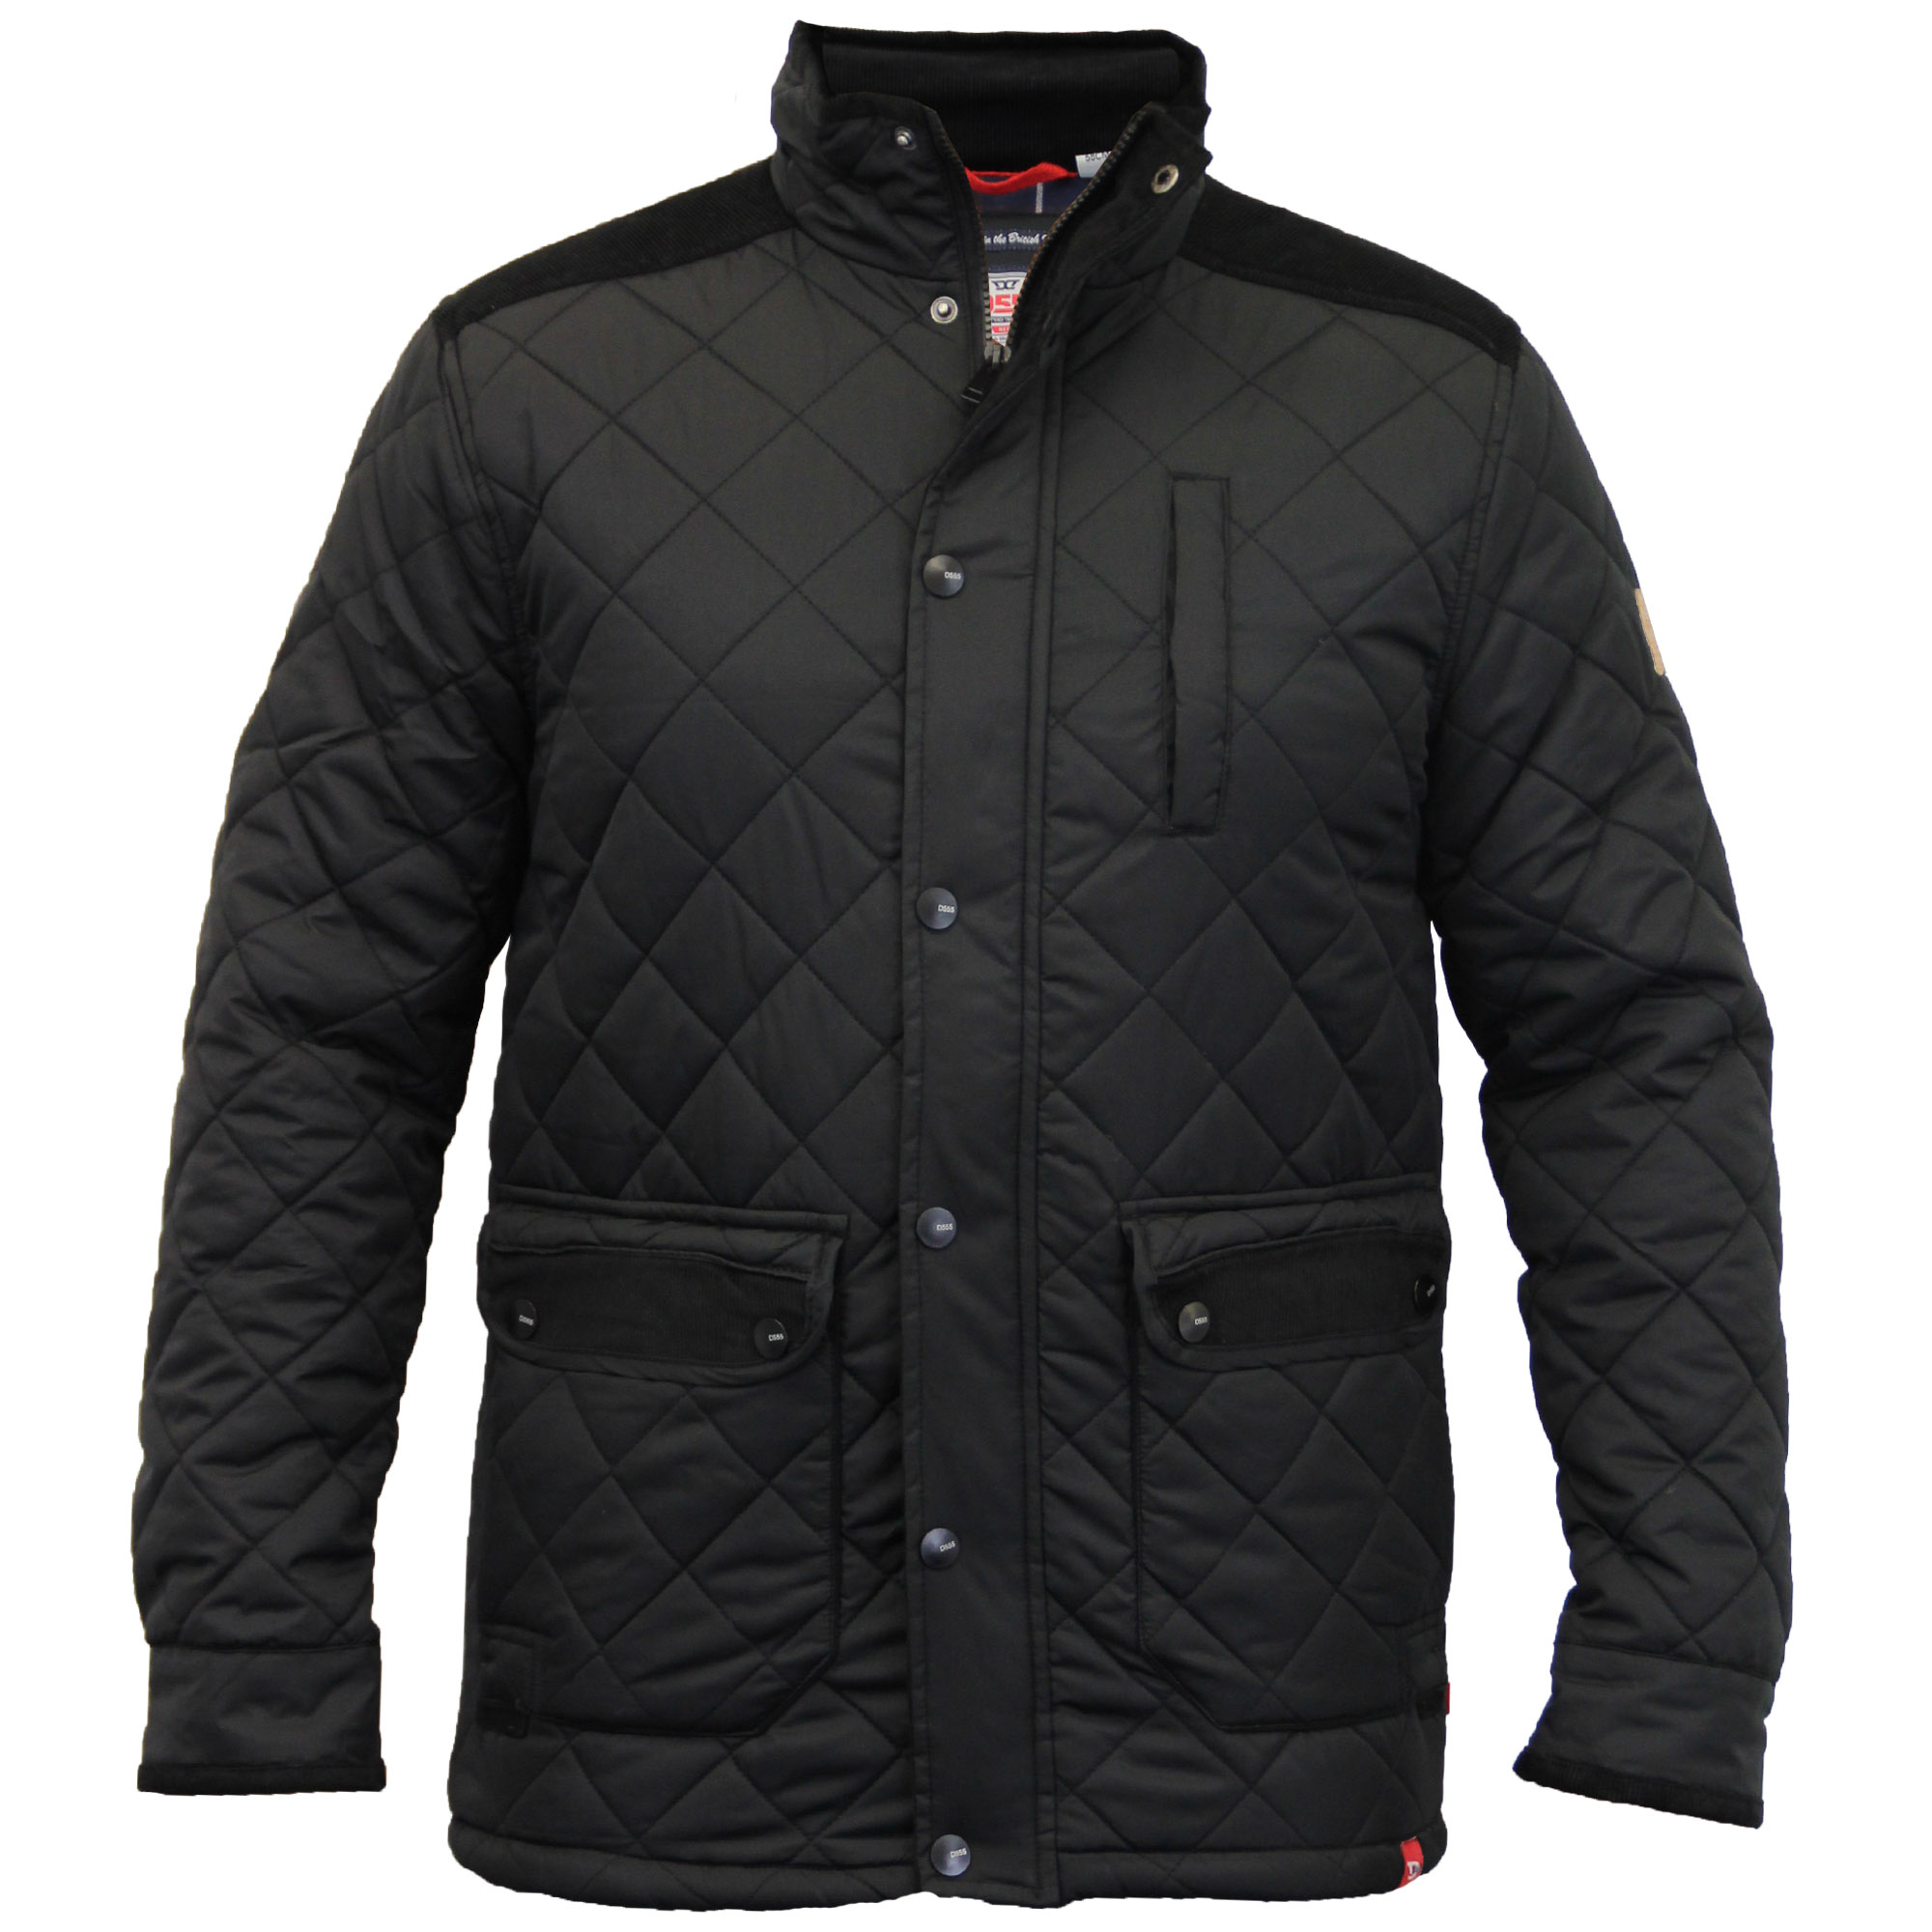 Mens Jacket D555 Duke Coat Big King Size Padded Corduroy Quilted ...